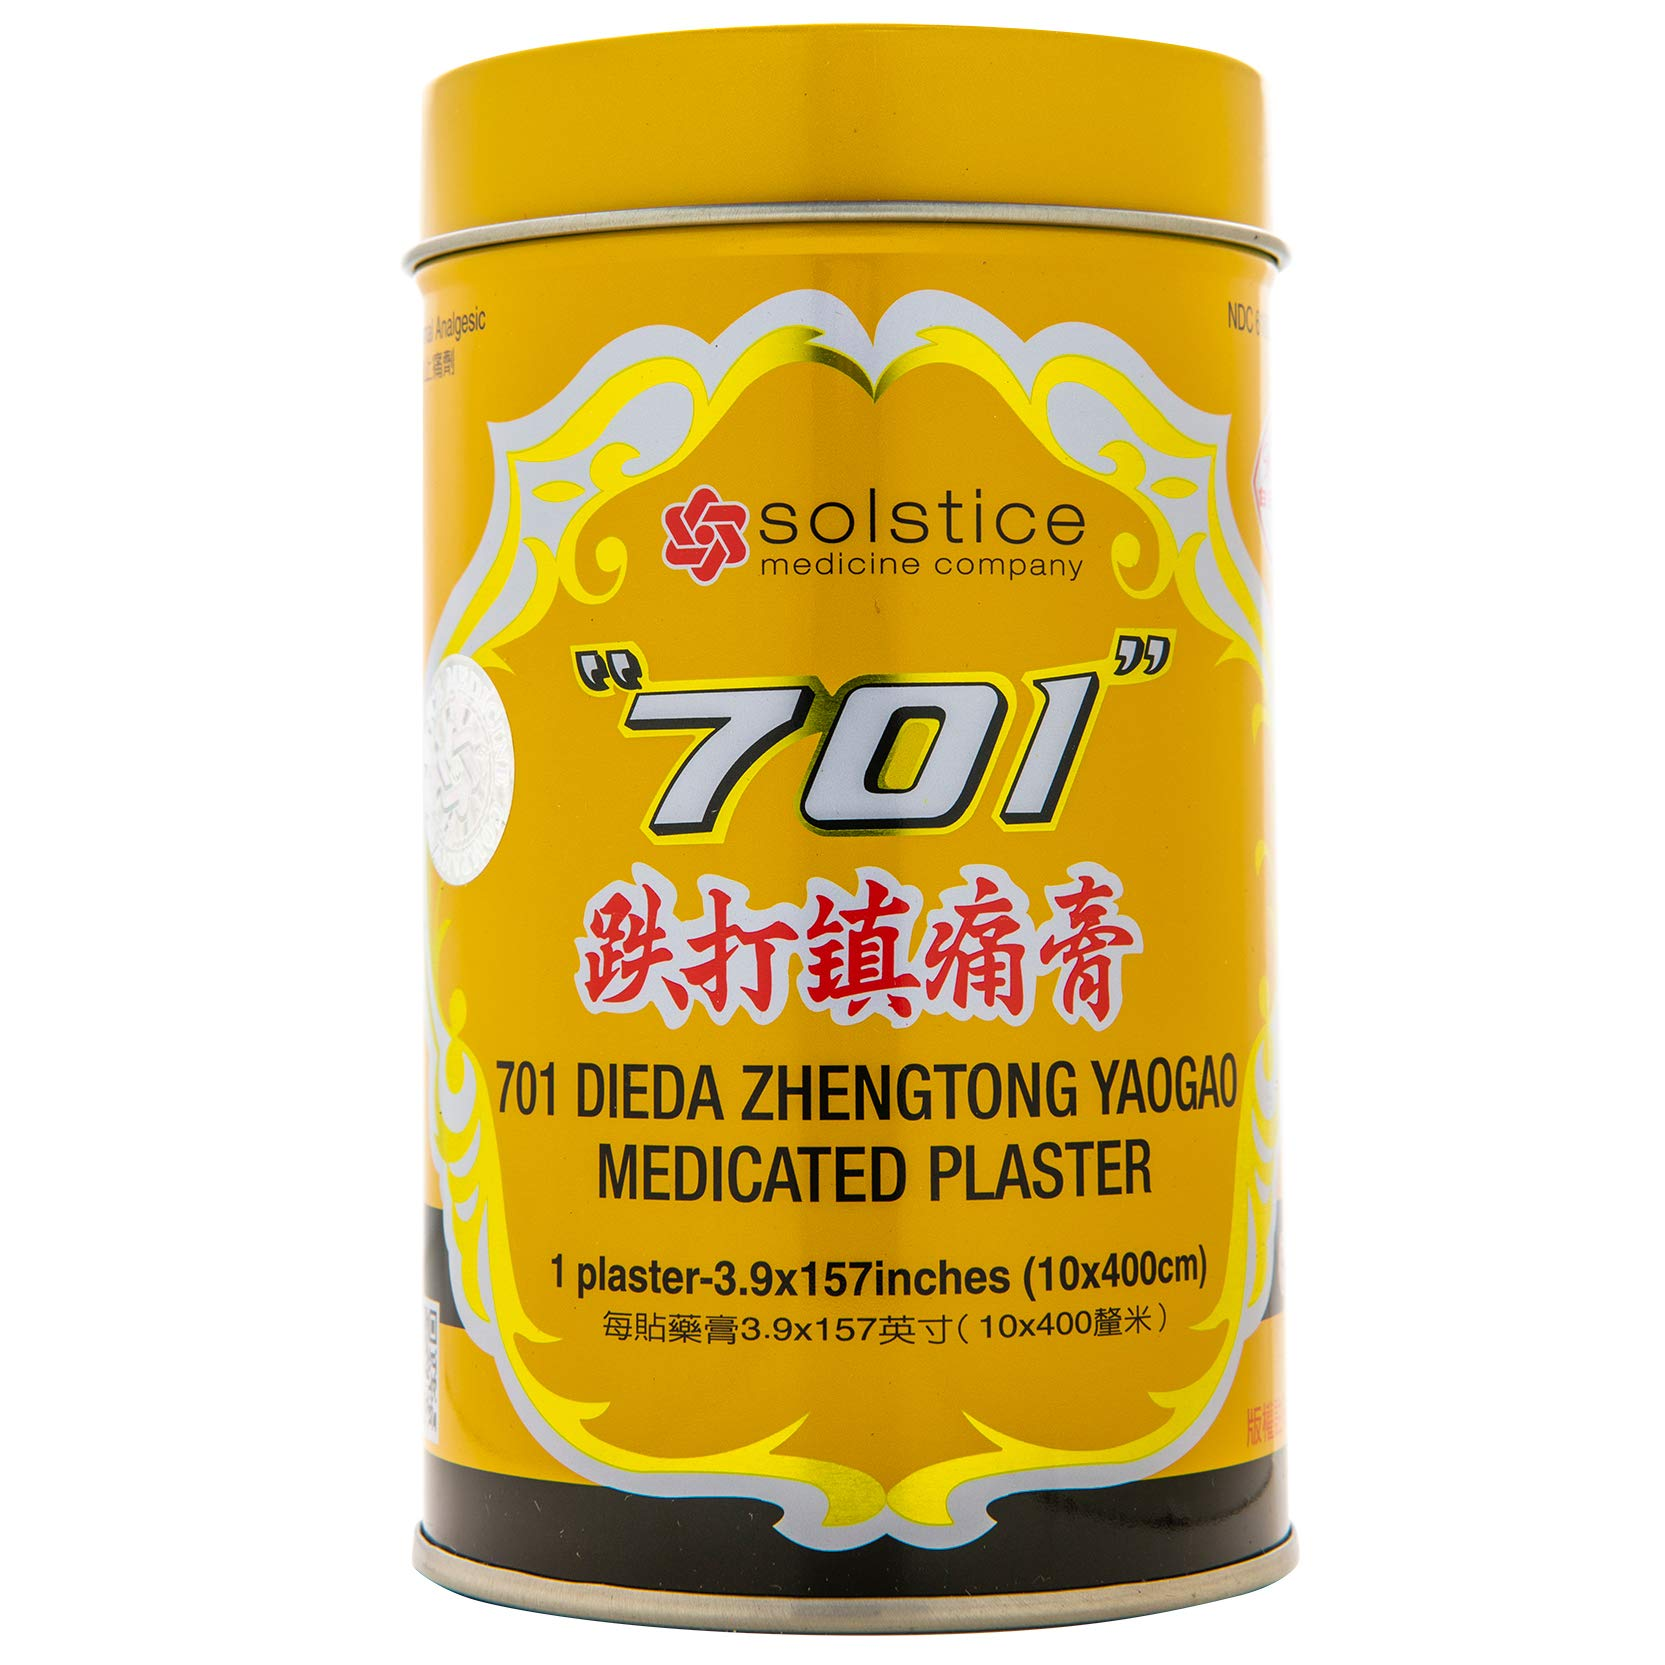 701 Medicated Plaster (Genuine Solstice Product) - 1 Can by ''701'' 701 Dieda Zhengtong Yaogao Medicated Plaster